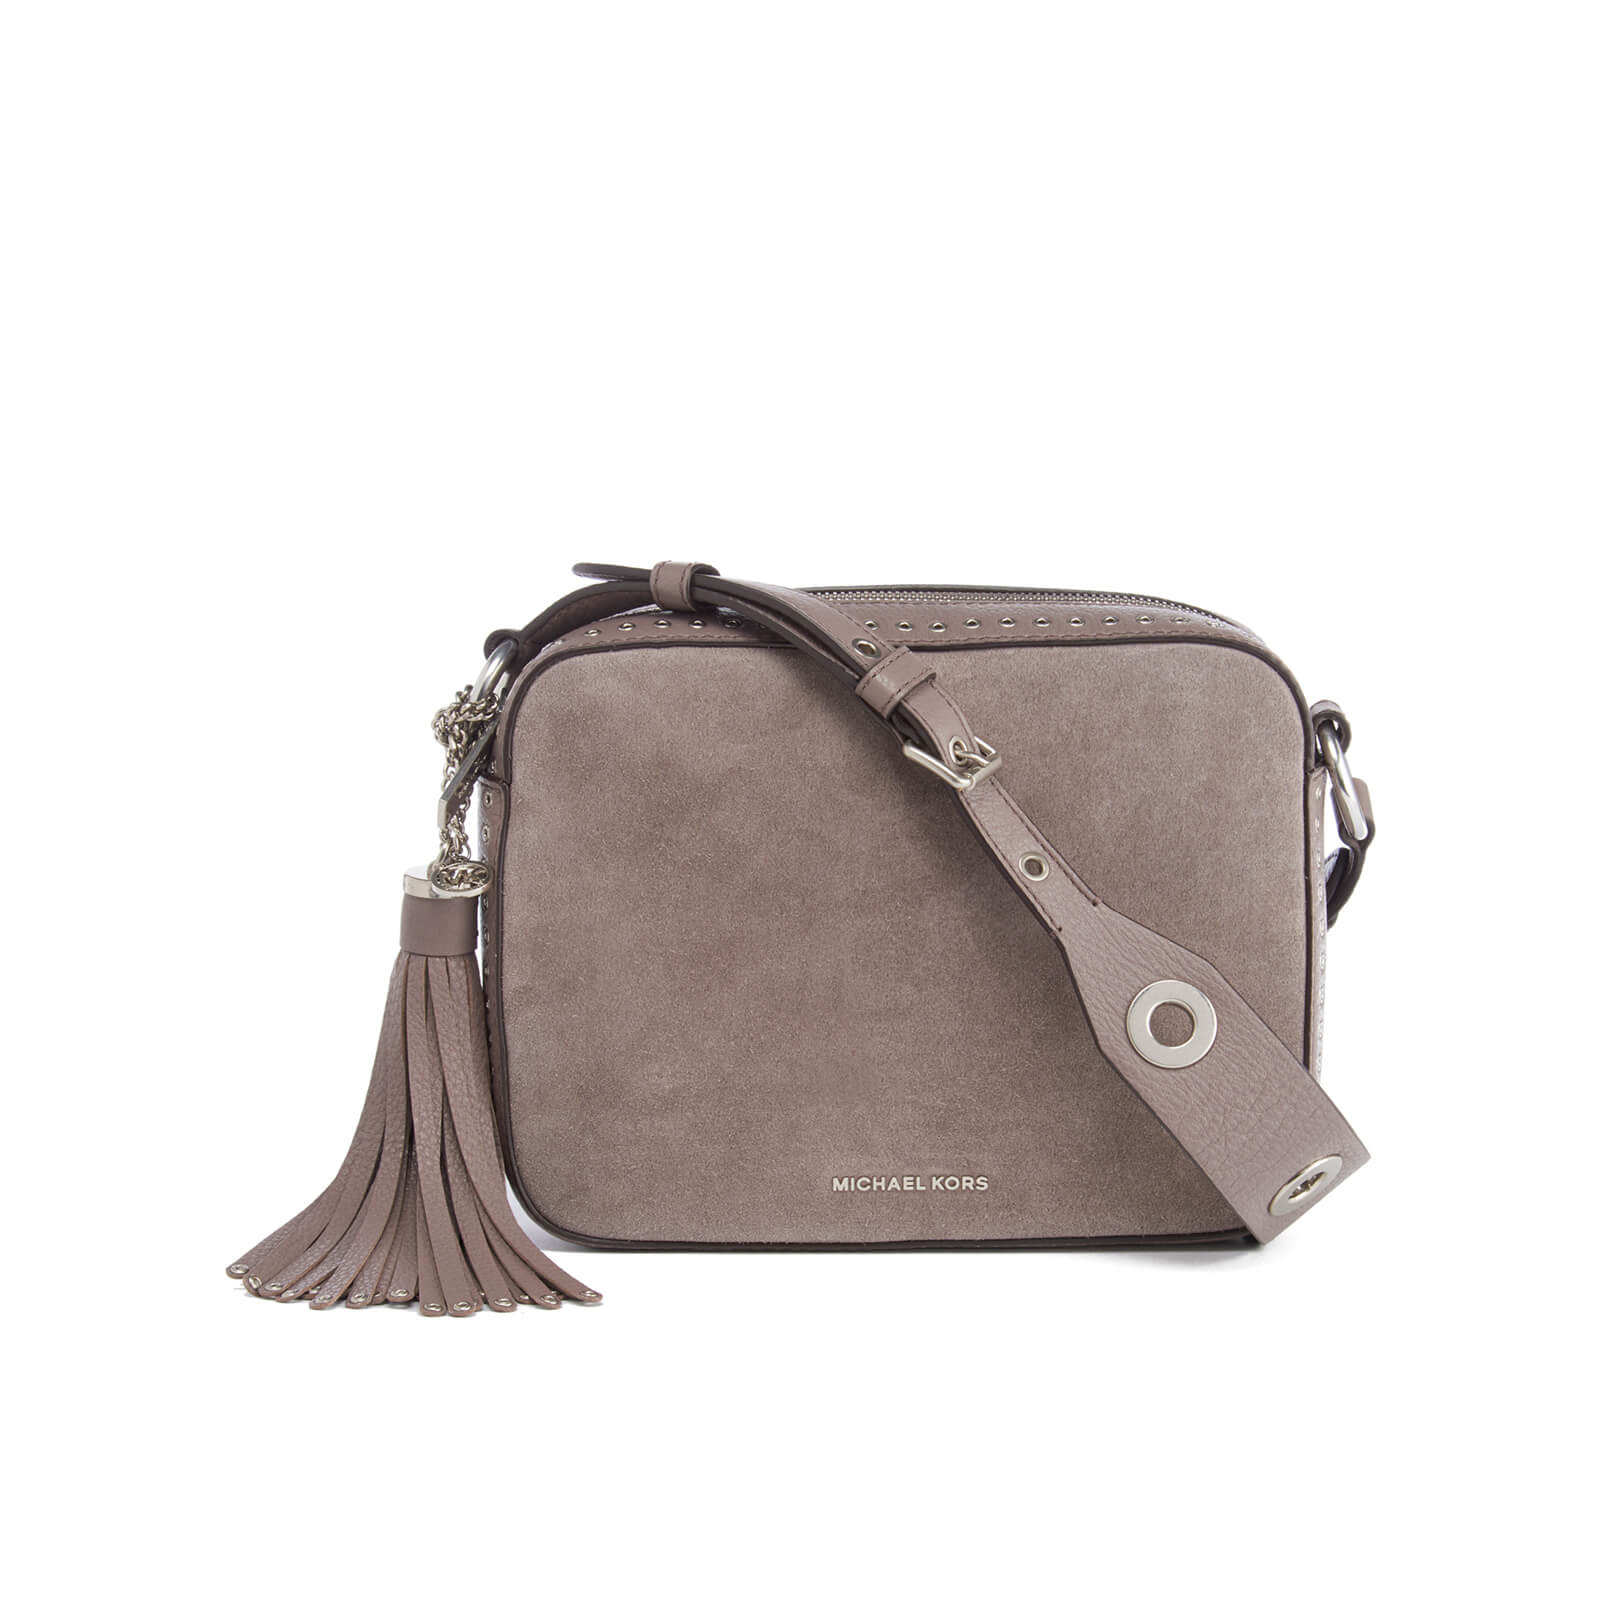 3882094c462f MICHAEL MICHAEL KORS Women's Brooklyn Large Suede Camera Bag - Cinder -  Free UK Delivery over £50